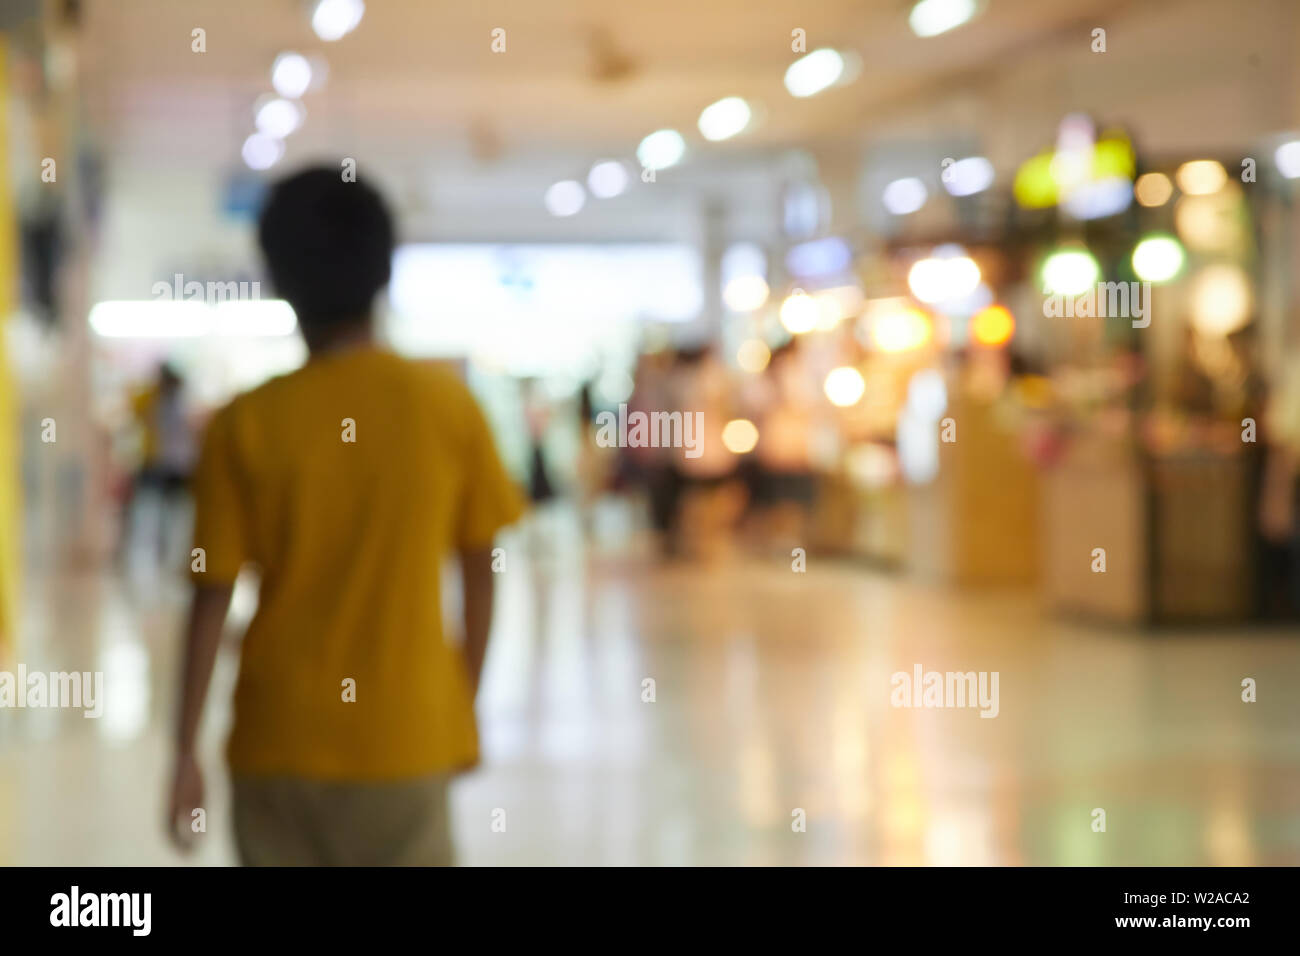 Blurry scene of people in department store - Stock Image